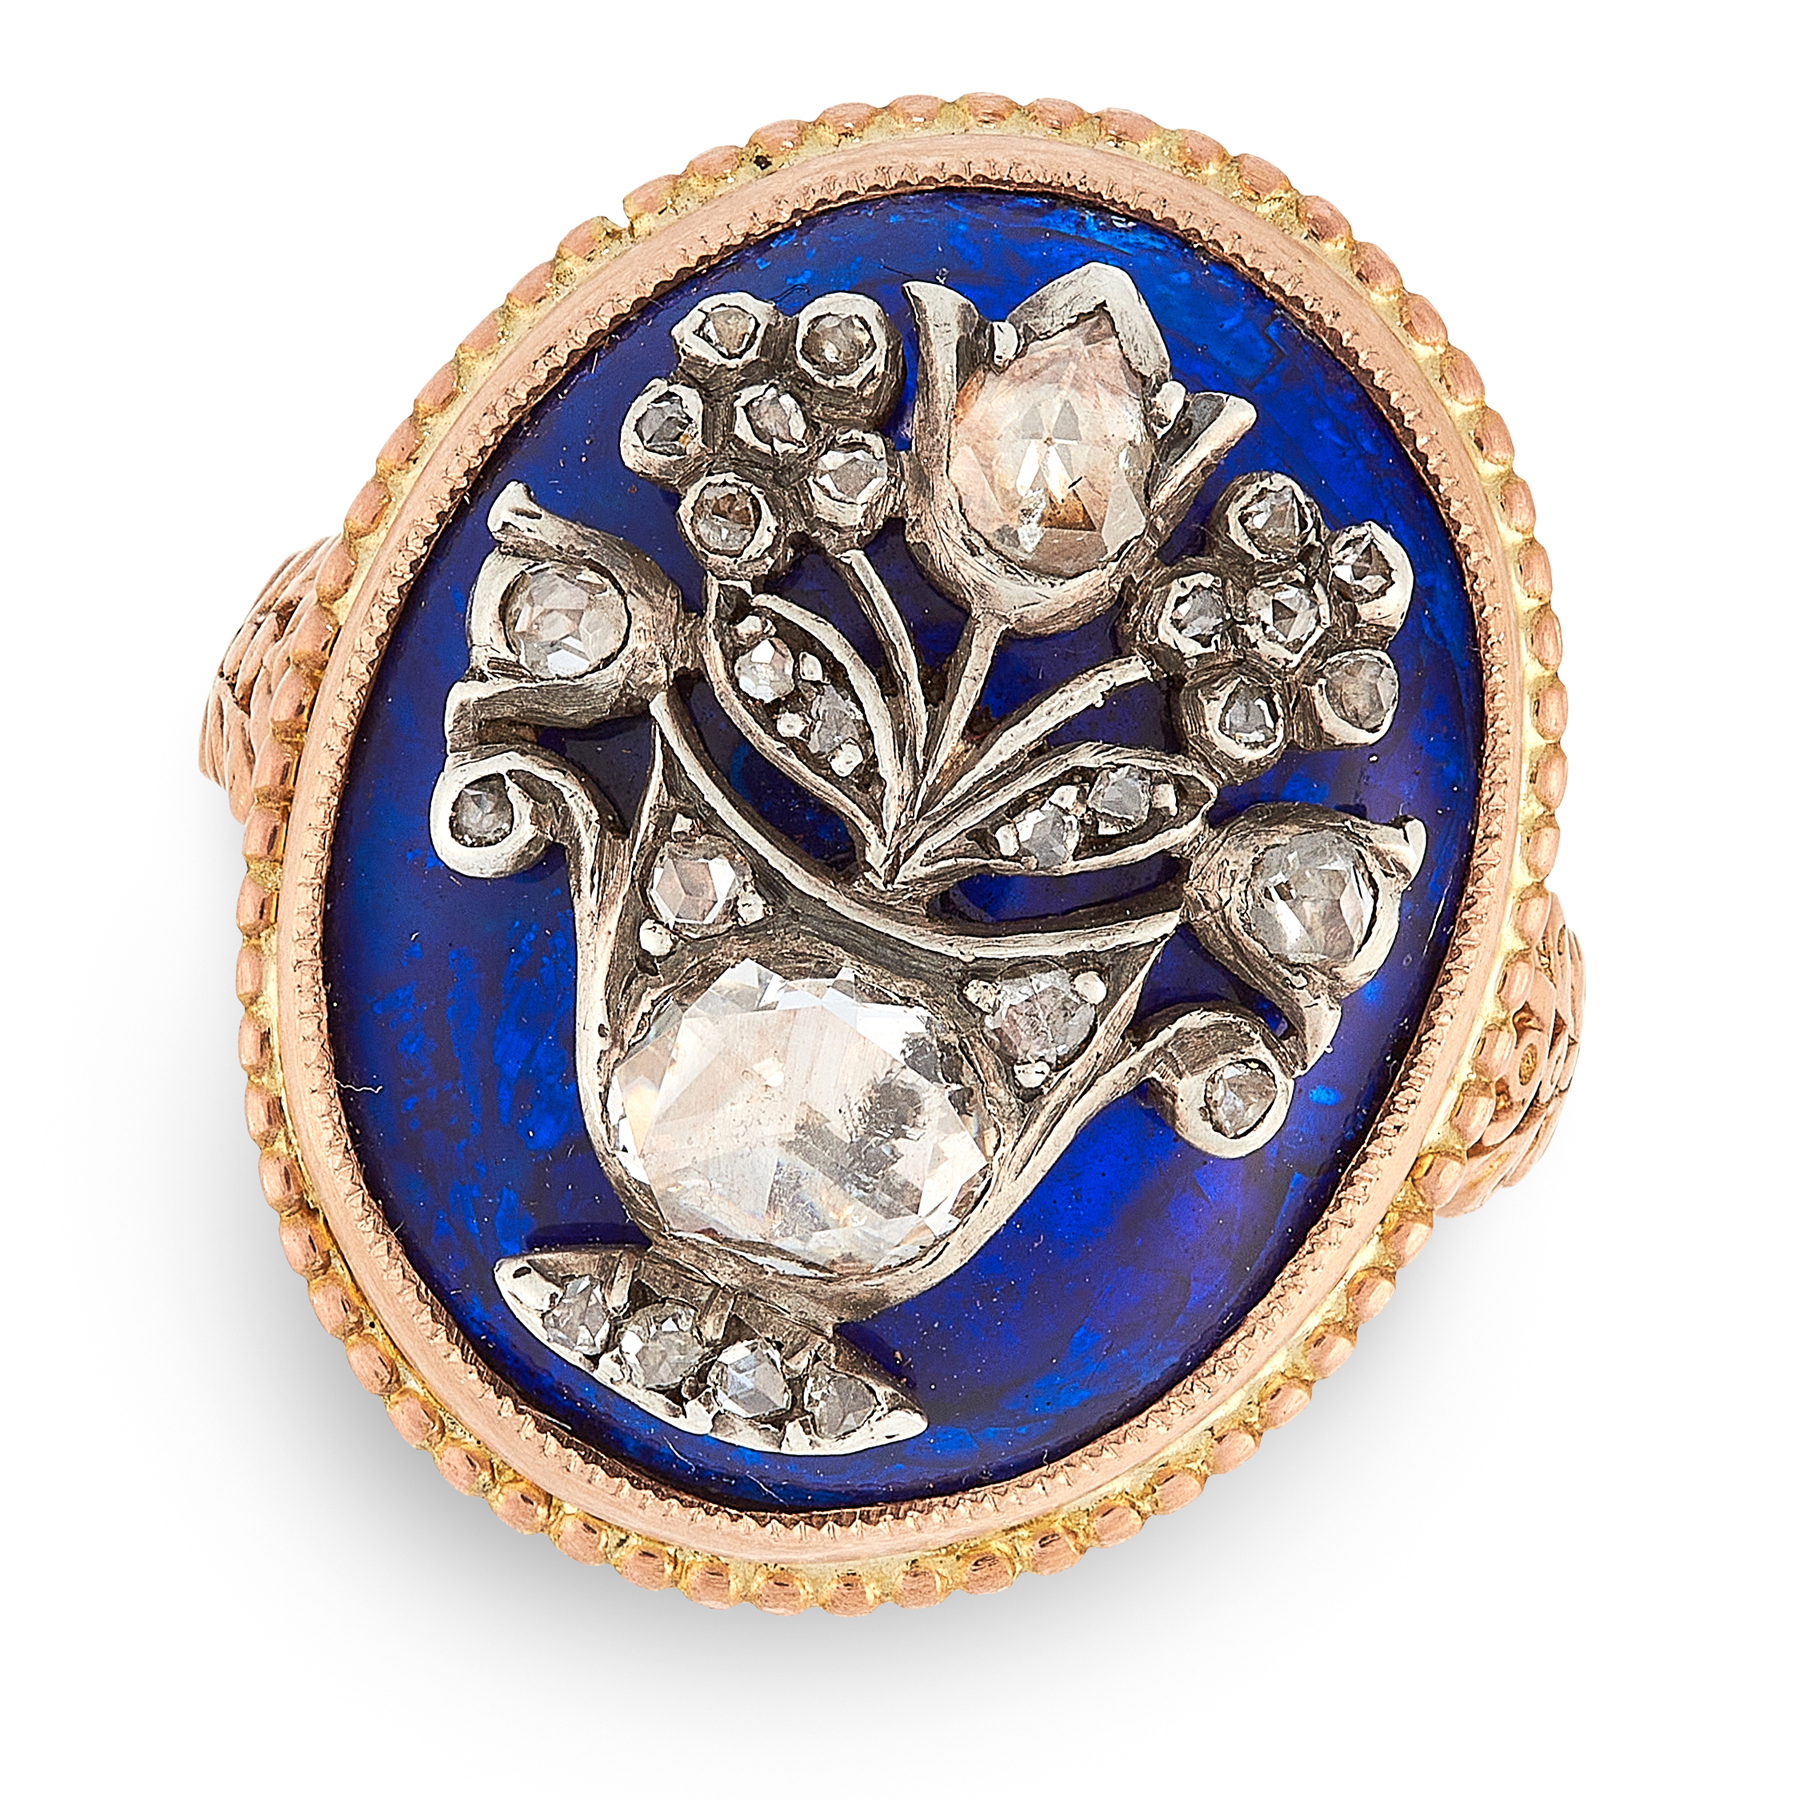 AN ANTIQUE GEORGIAN ENAMEL AND DIAMOND RING in yellow gold, the oval face is decorated with blue